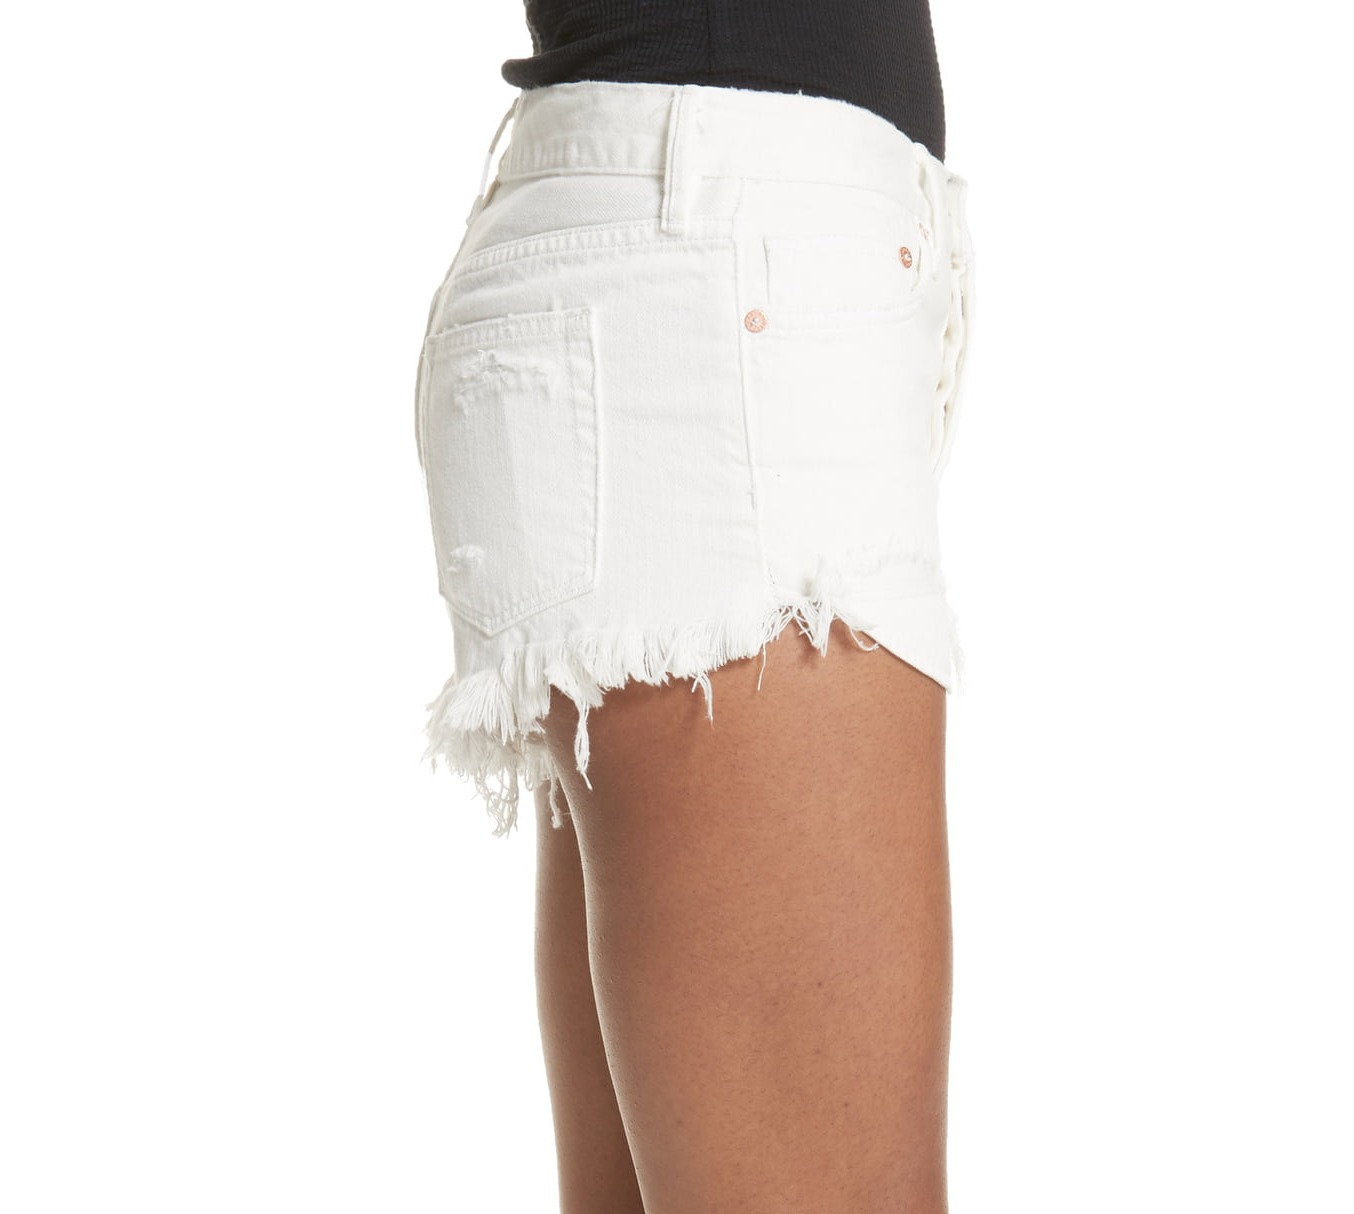 Free-People-Spring-White-Women-039-s-Size-29-High-Rise-Ripped-Denim-Shorts-68-407 thumbnail 3